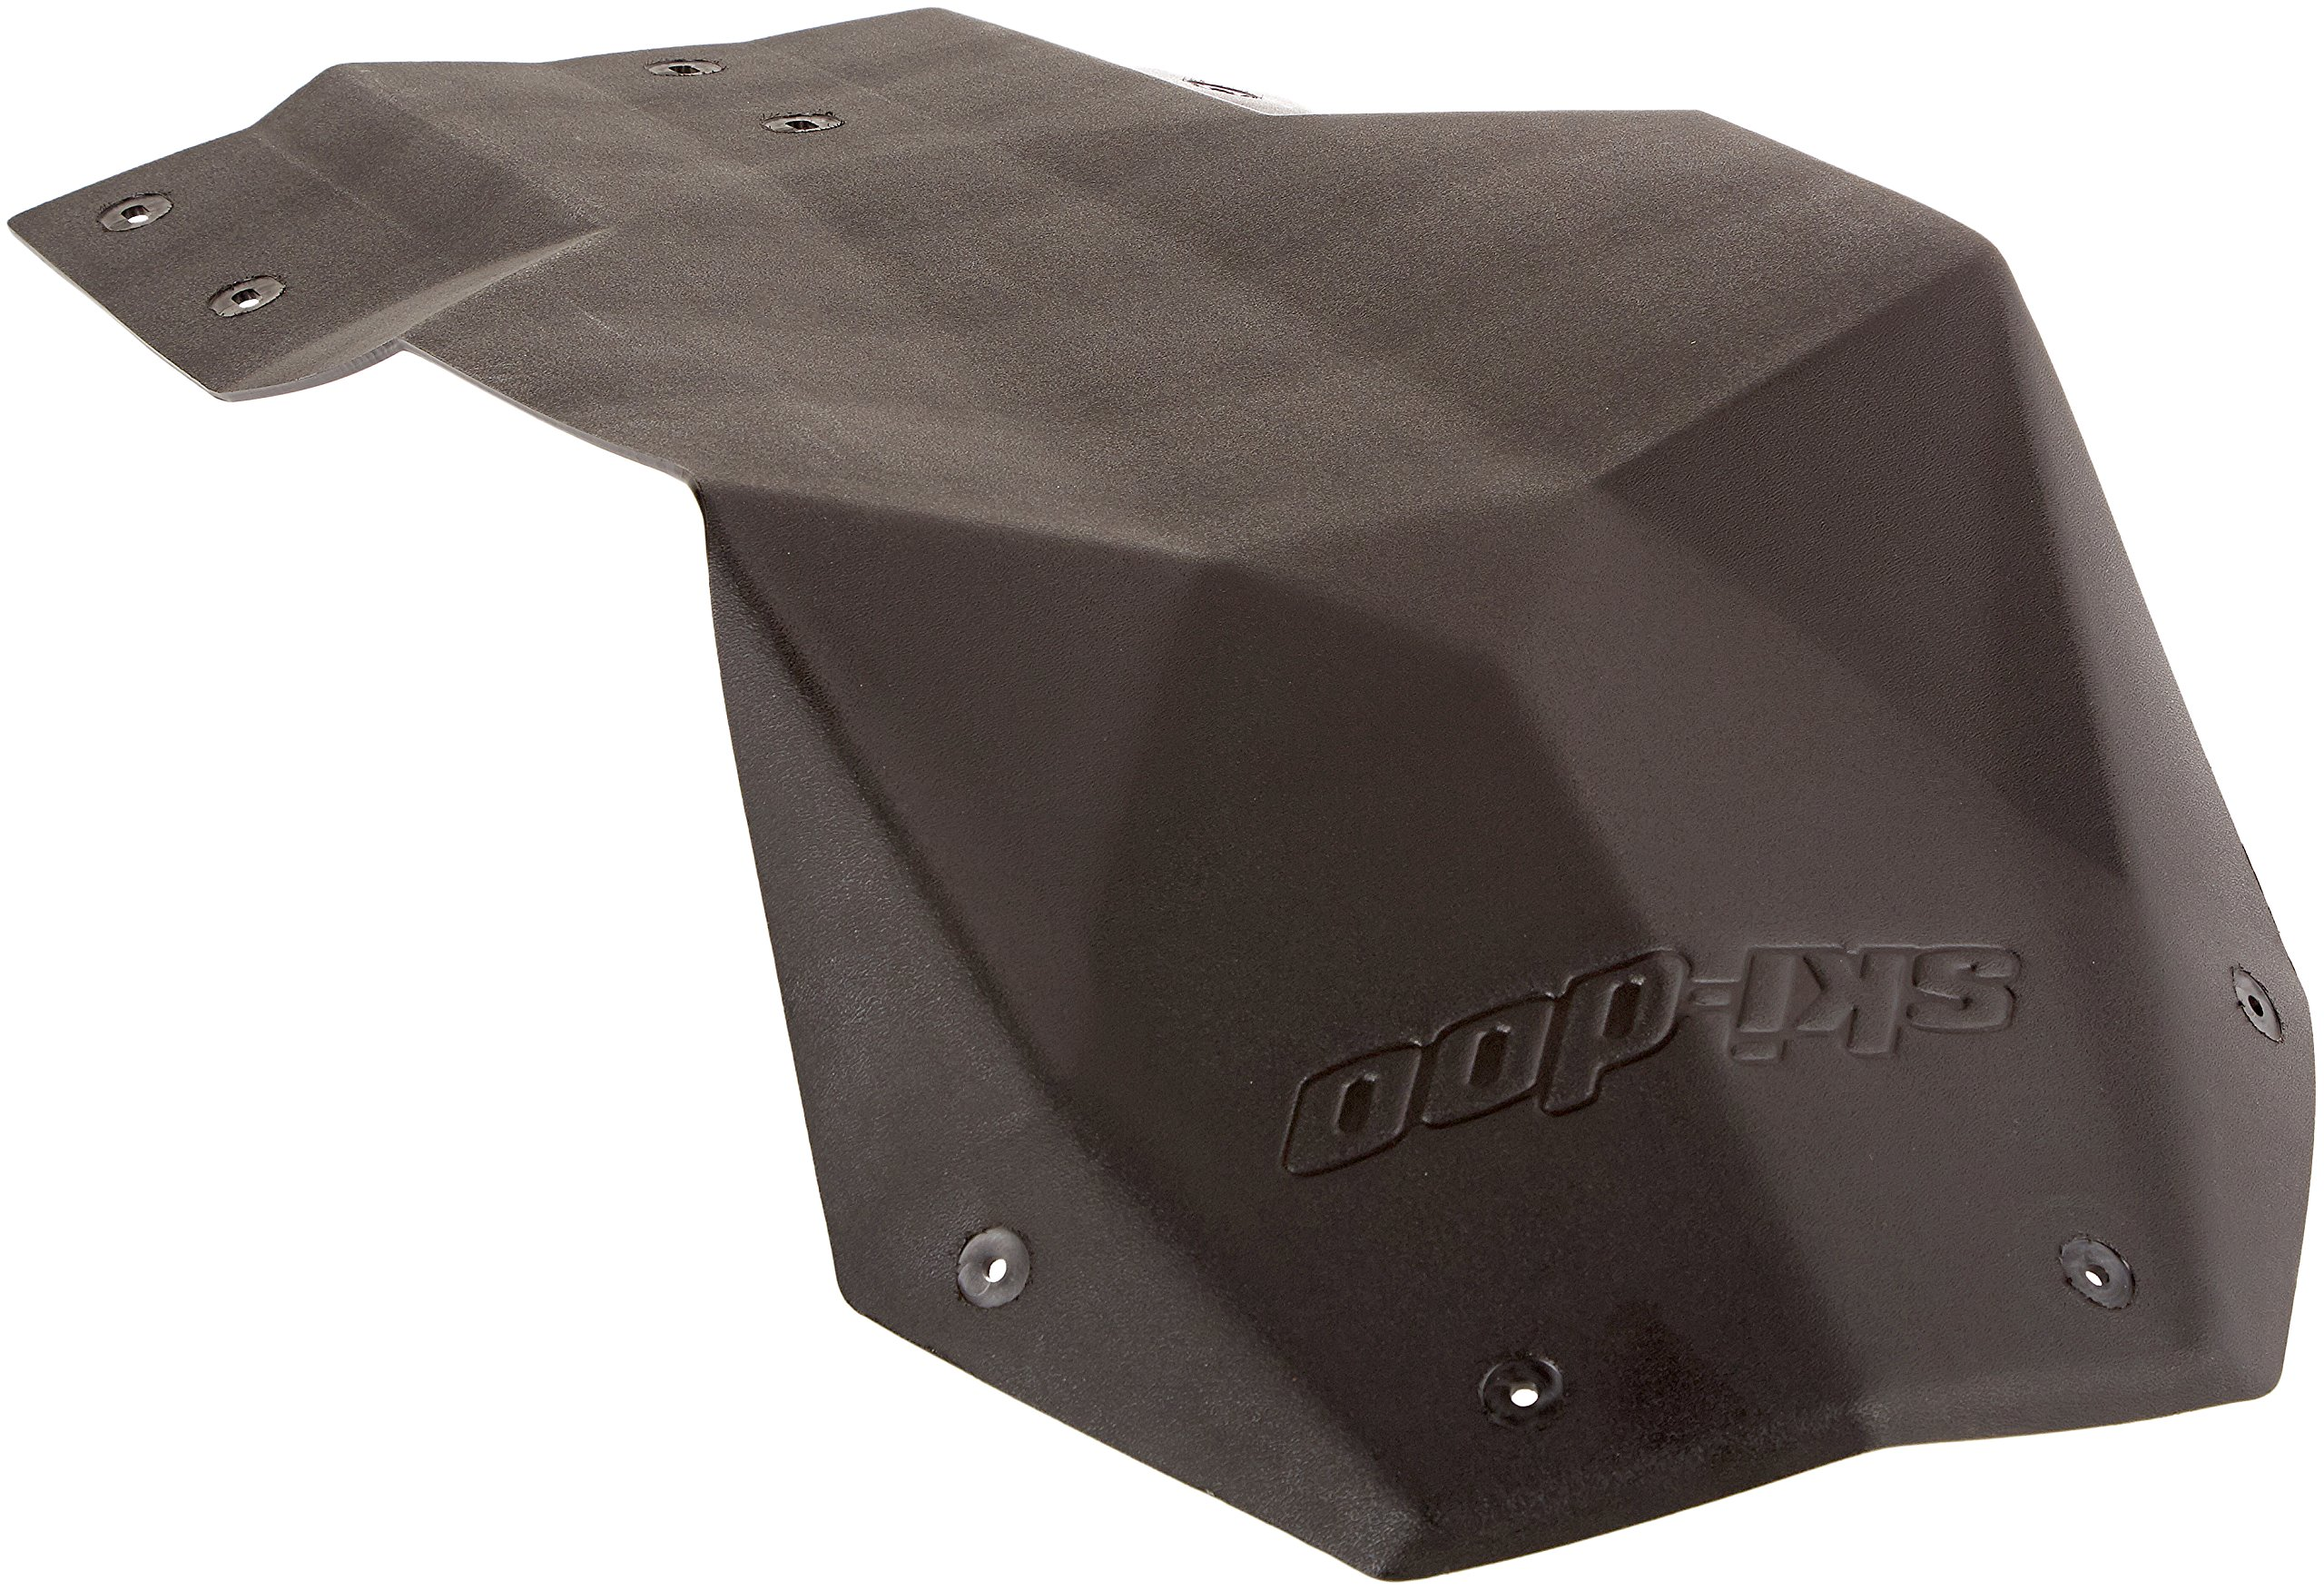 Ski-Doo 860200287 Full Body Skid Plate